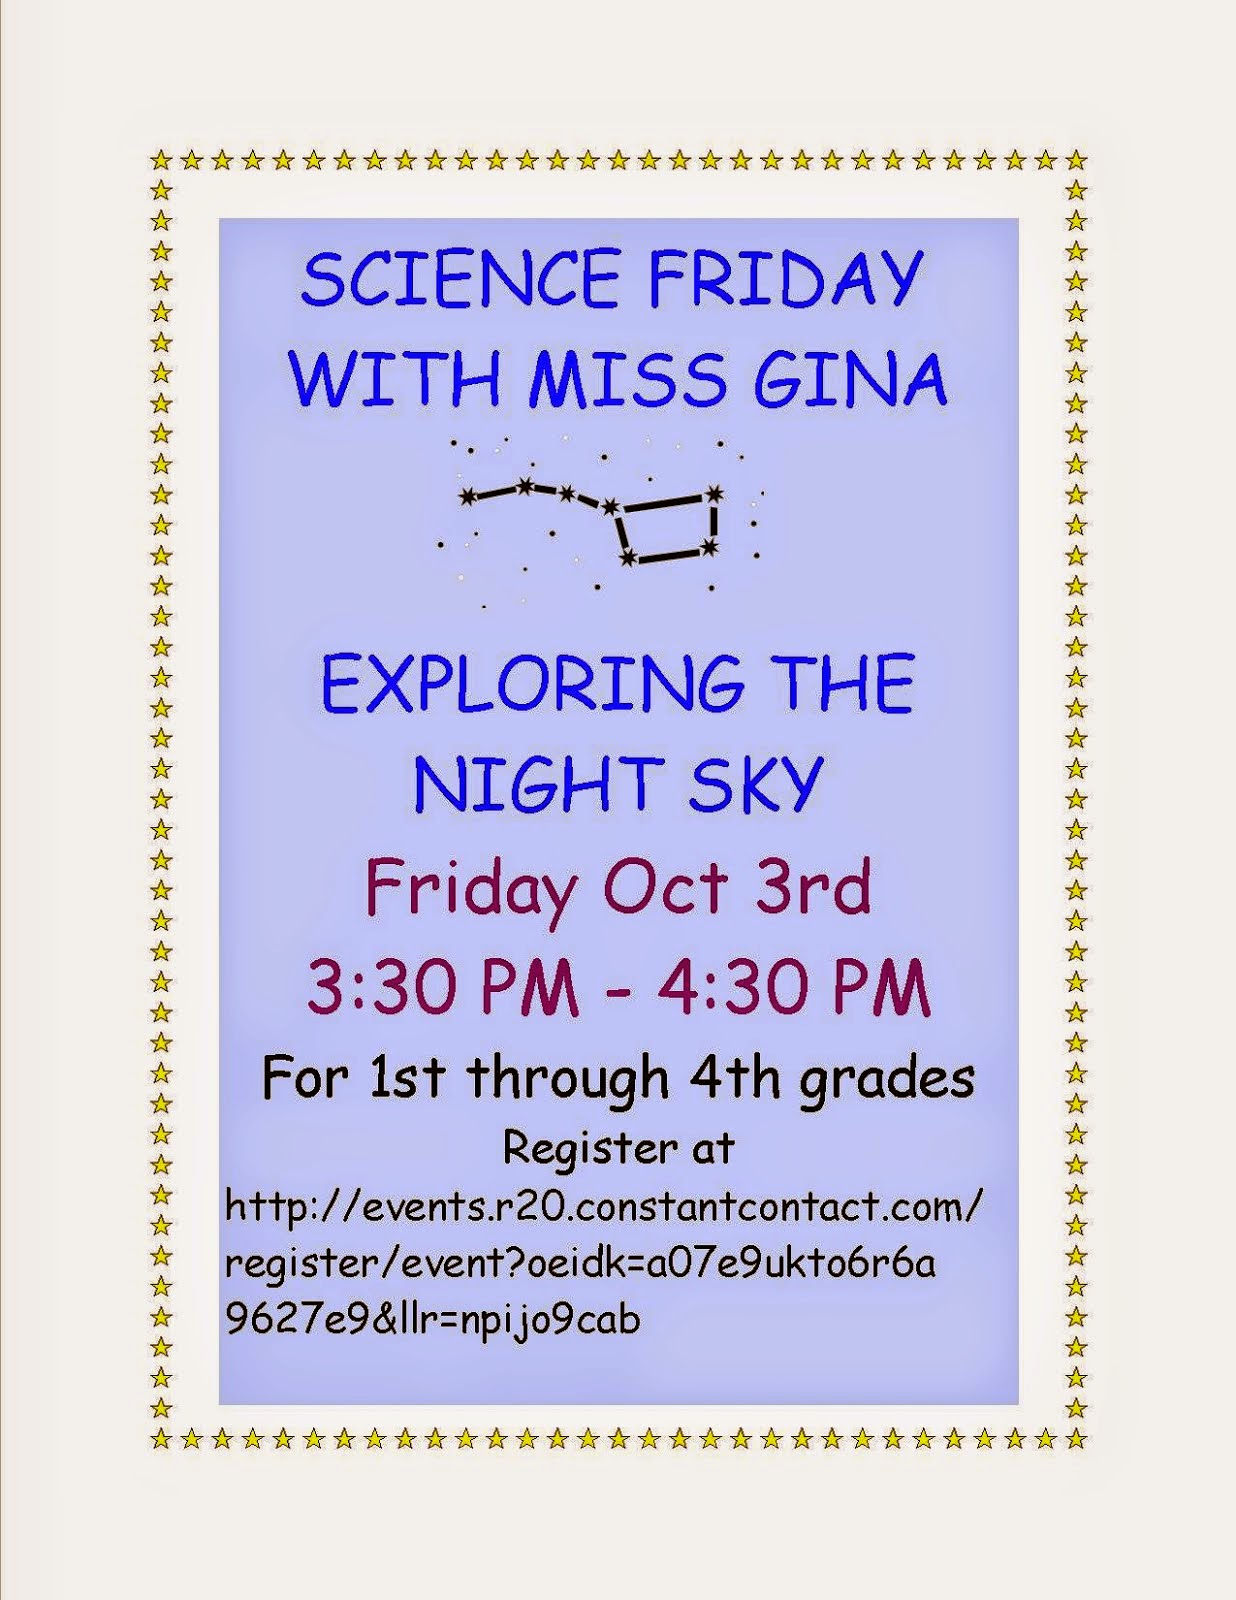 Exploring the Night Sky with Miss Gina